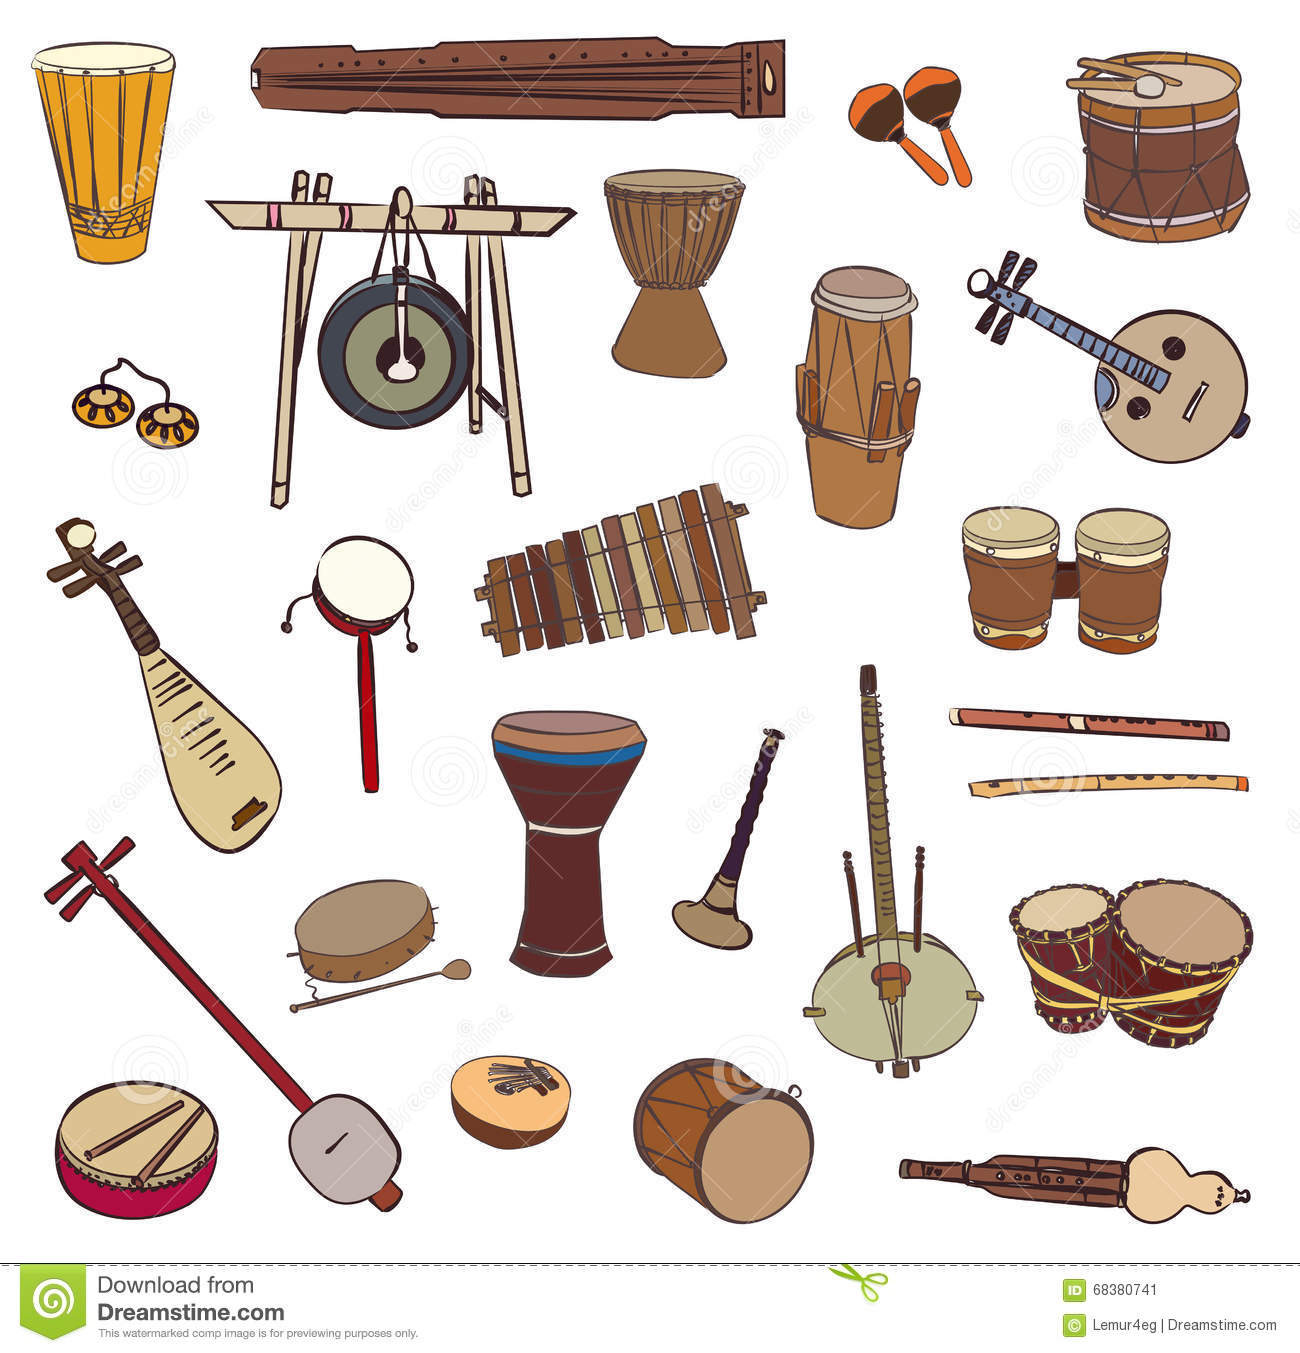 https://thumbs.dreamstime.com/z/ethnic-traditional-musical-instruments-vector-contour-set-music-billboard-white-background-68380741.jpg